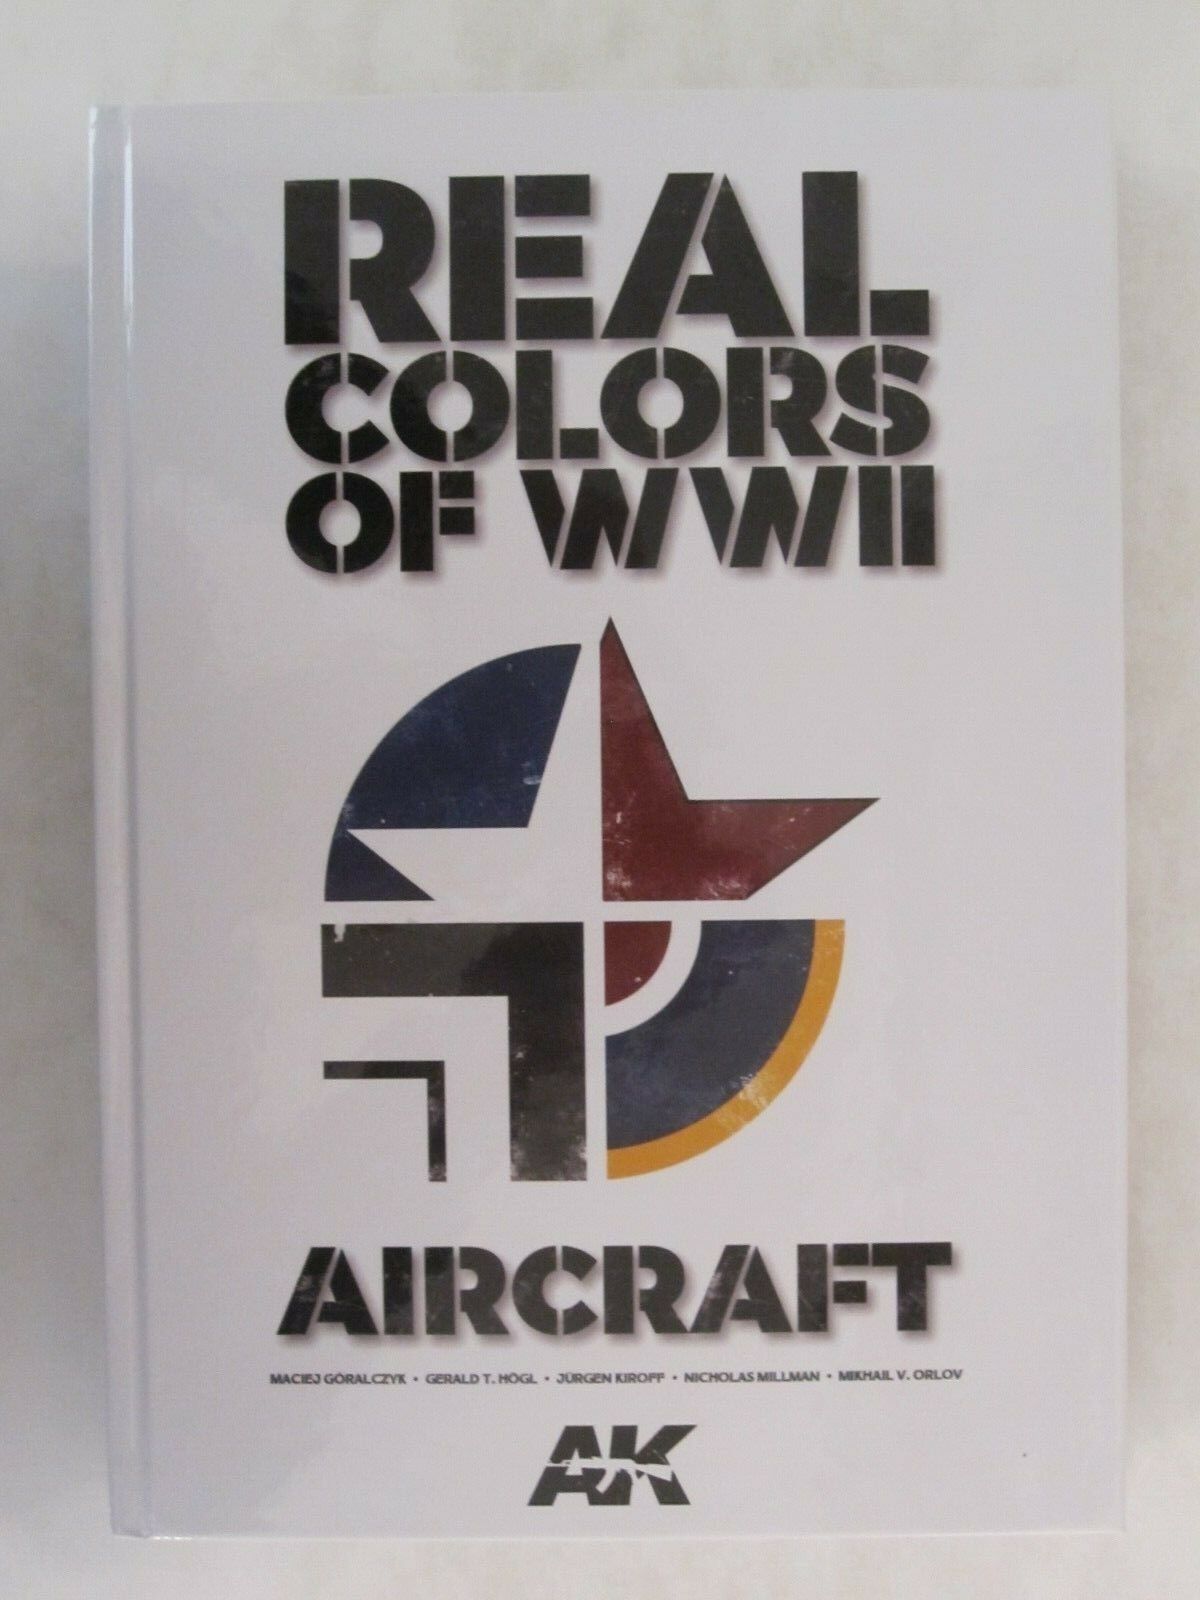 Real colors of WWII - Aircraft - by AK Interactive, Profiles, Photos